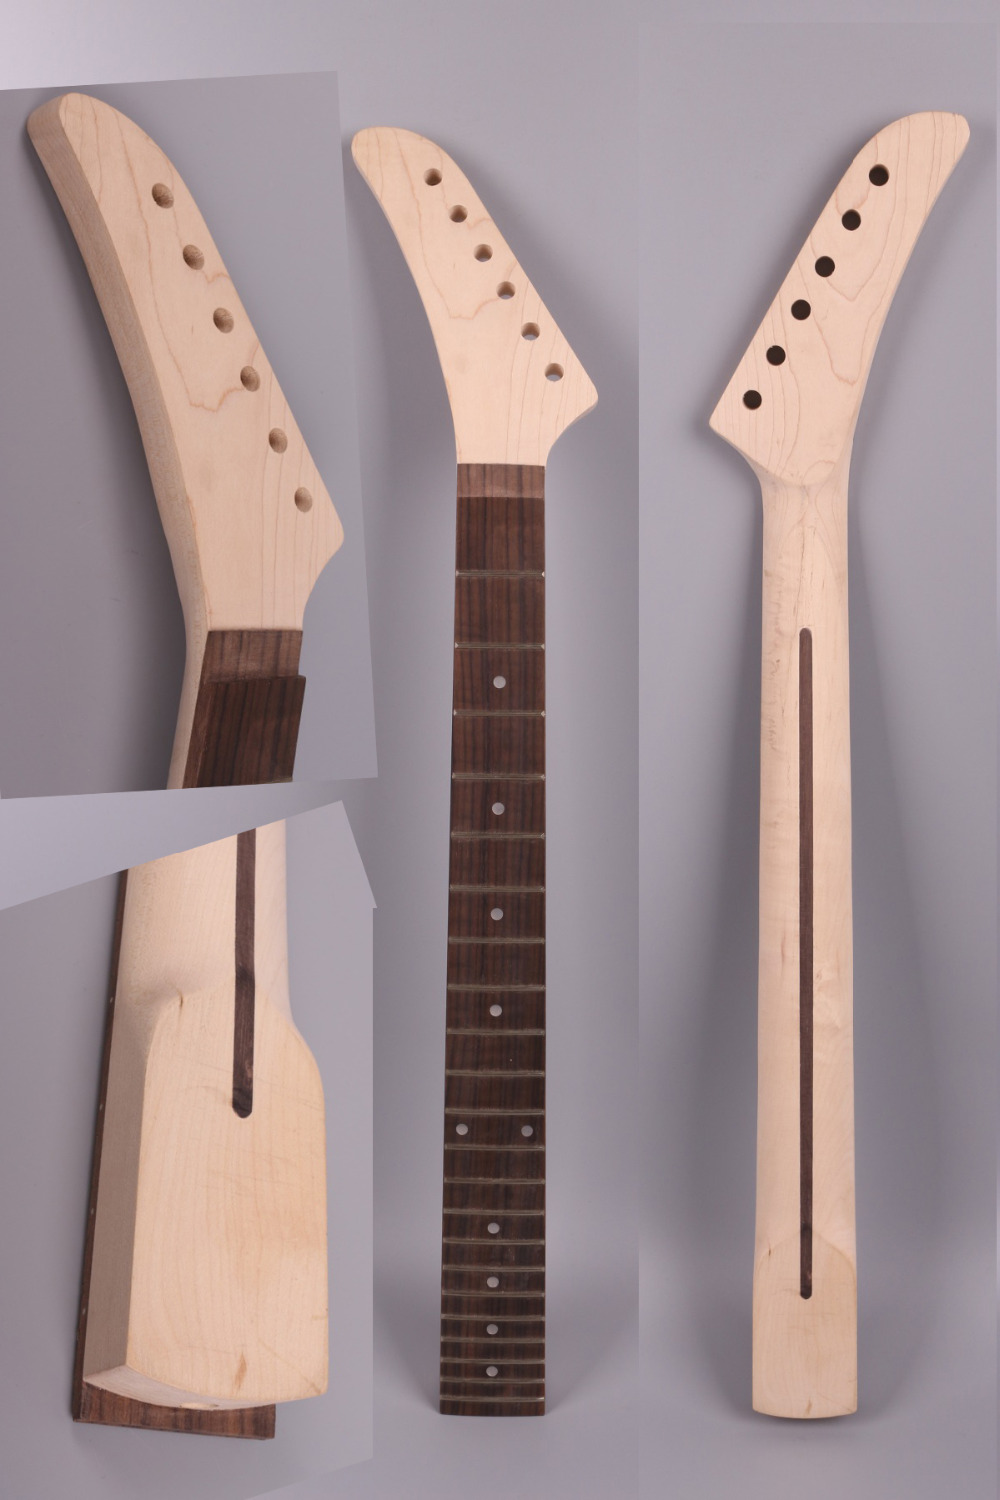 electric guitar neck 25.5 inch 22 fret maple banana headstock rosewood fingerboard Left hand one left unfinished guitar neck electric guitar neck solid wood 22 fret new rosewood fingerboard